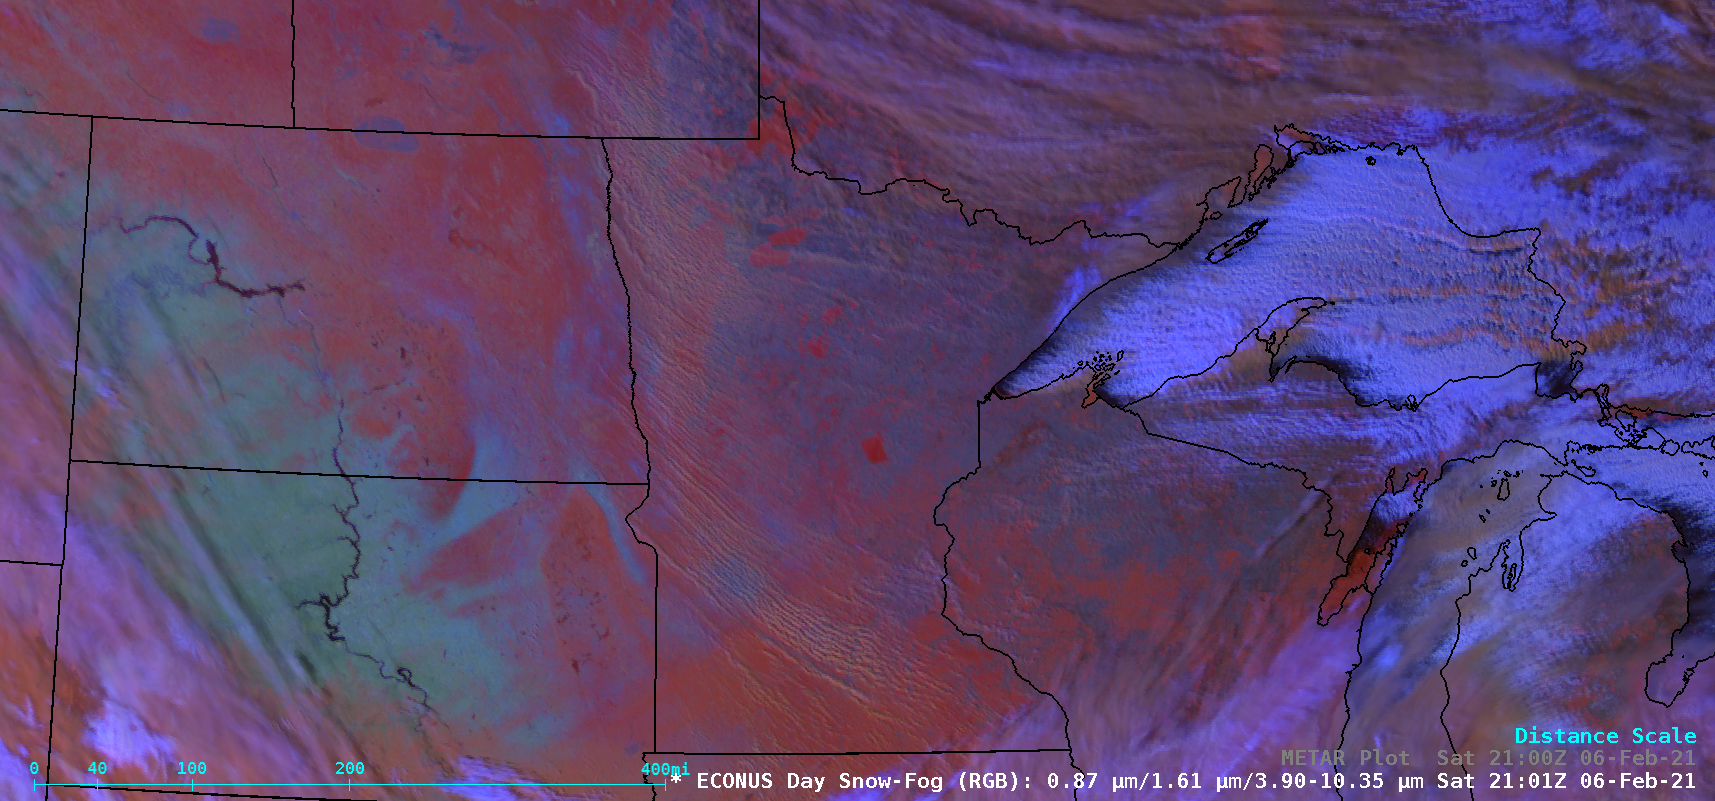 GOES-16 Day Snow-Fog RGB images [click to play animation | MP4]